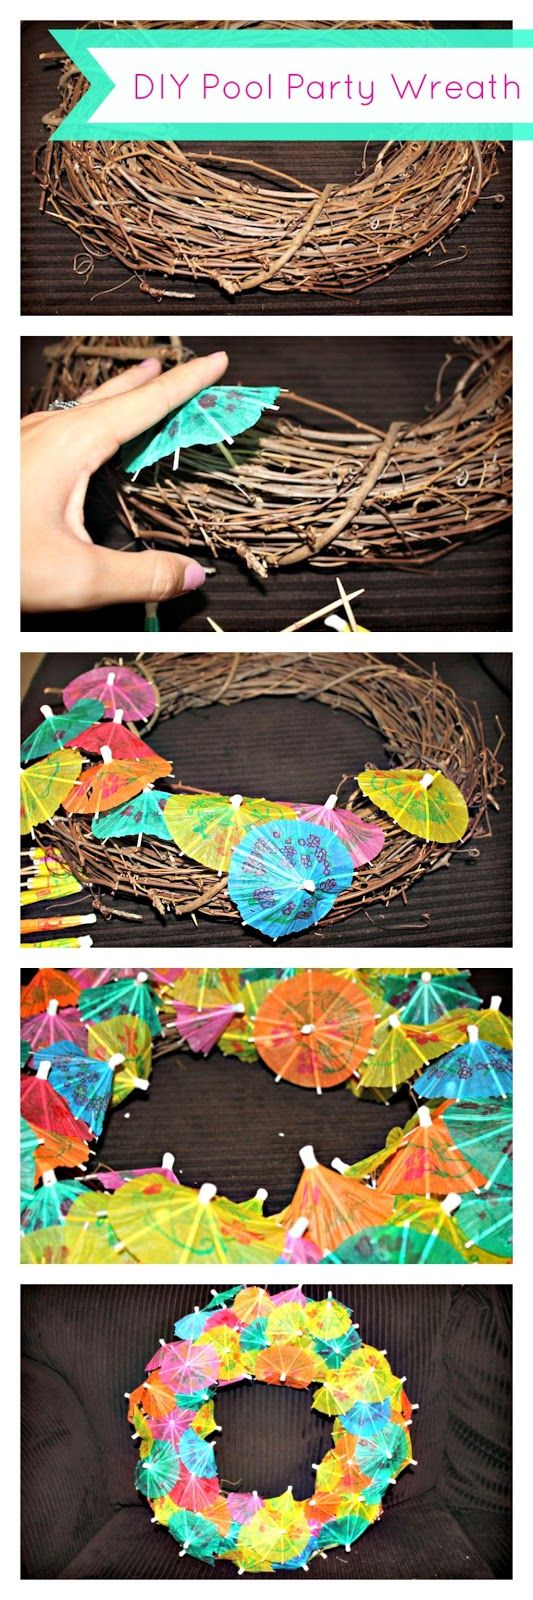 The NapTime Reviewer - Reviews | Giveaways | Events: Luau Party {Pin It to Win It $25 Gift Card Giveaway} #Sponsored by @Oriental Trading Company - Ends 8/7/13 This is a great party idea!